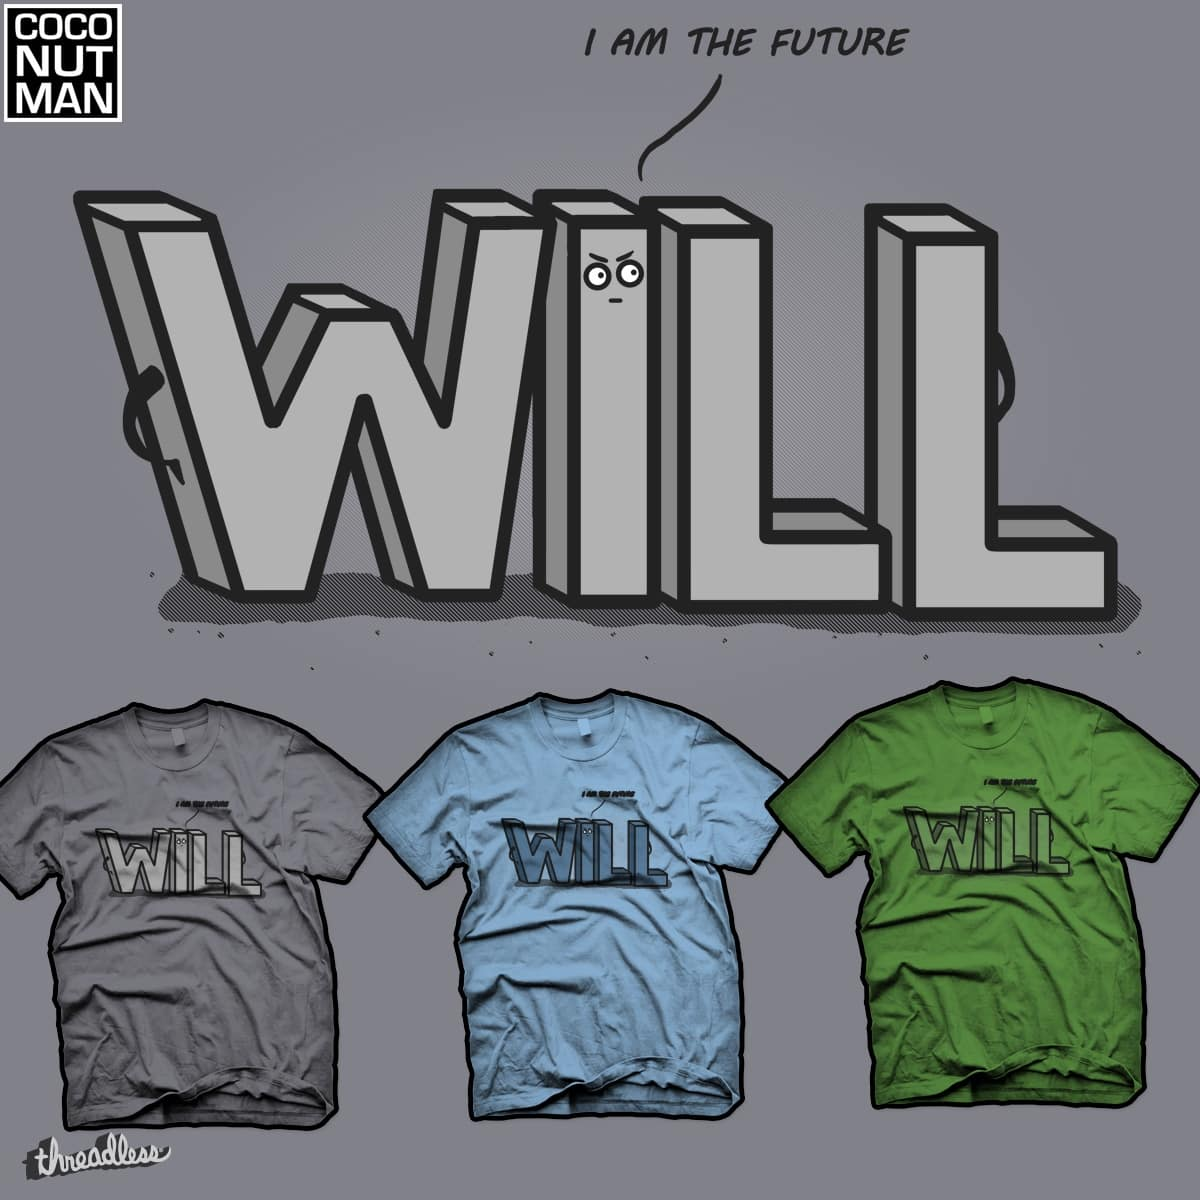 I am the future by coconutman on Threadless